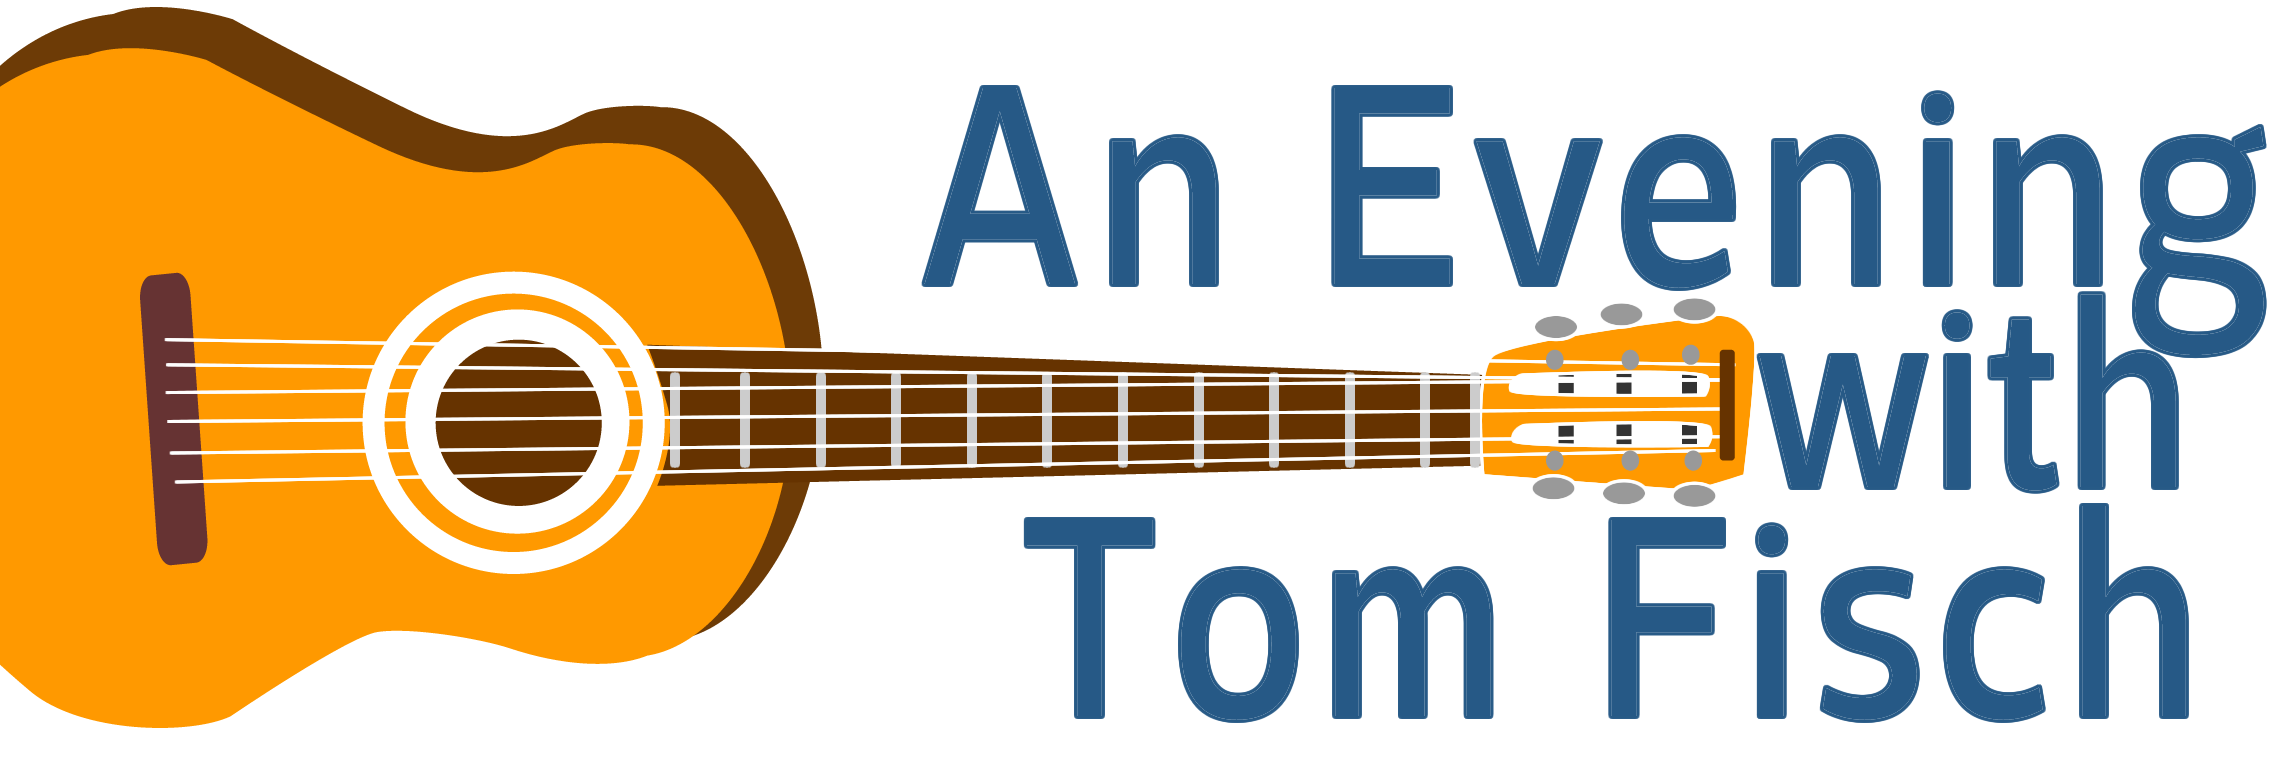 An Evening with Tom Fisch Thursday Aug 17 5:30 - 7:30